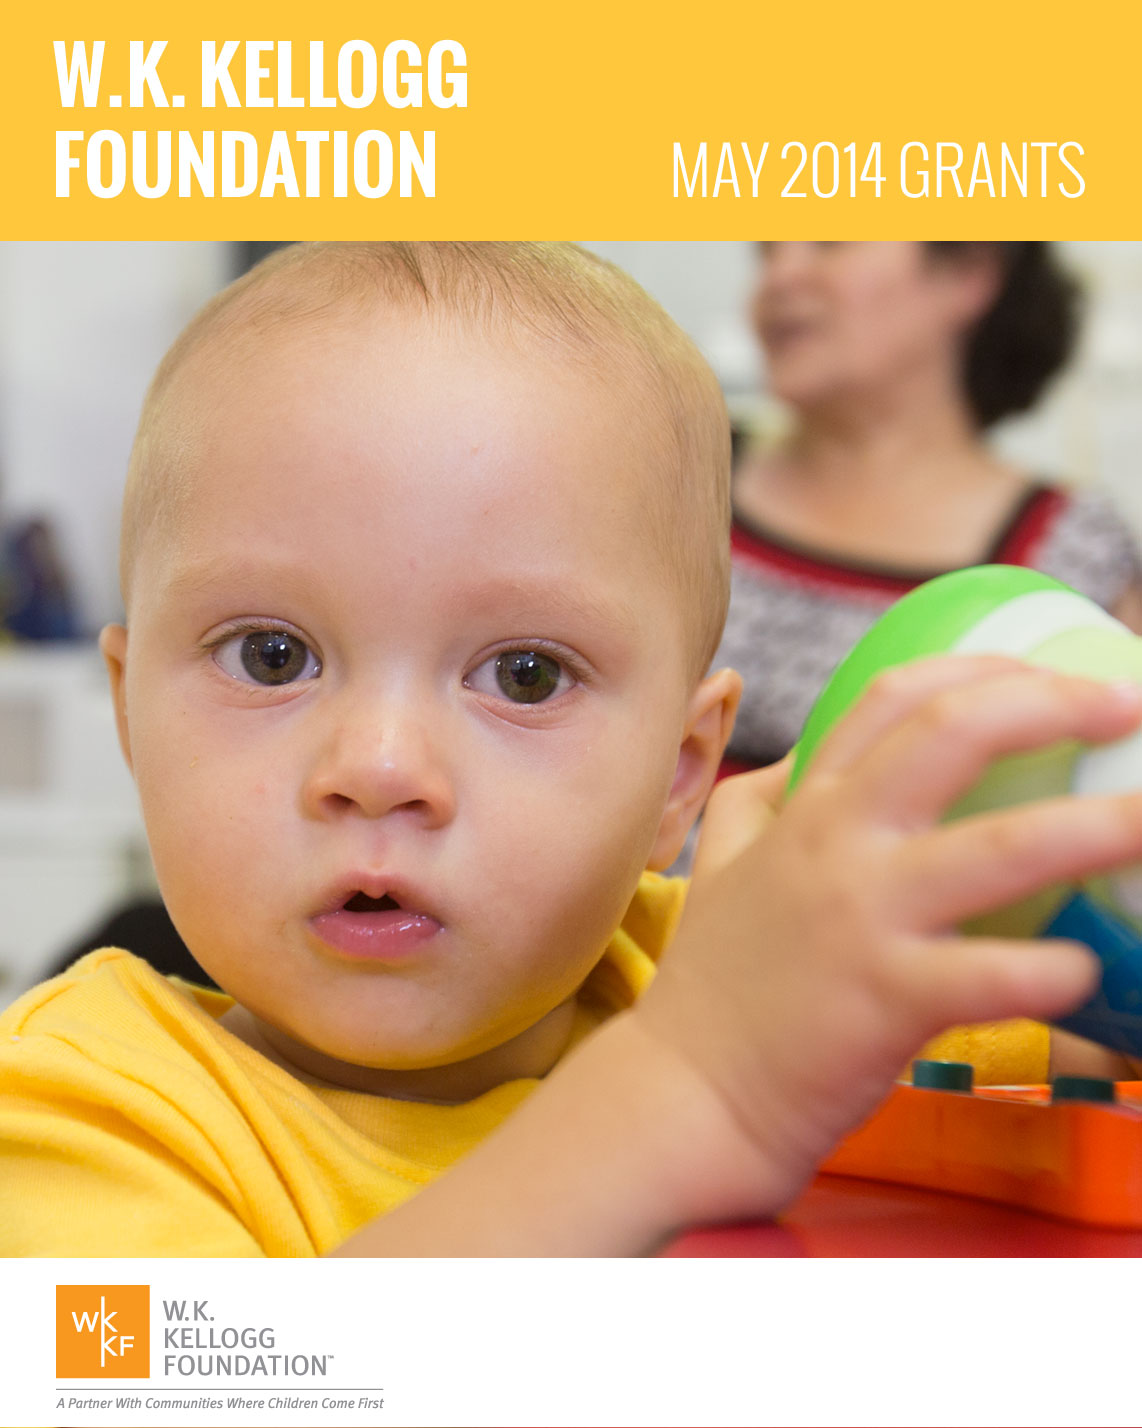 W.K. Kellogg Foundation May 2014 Grants